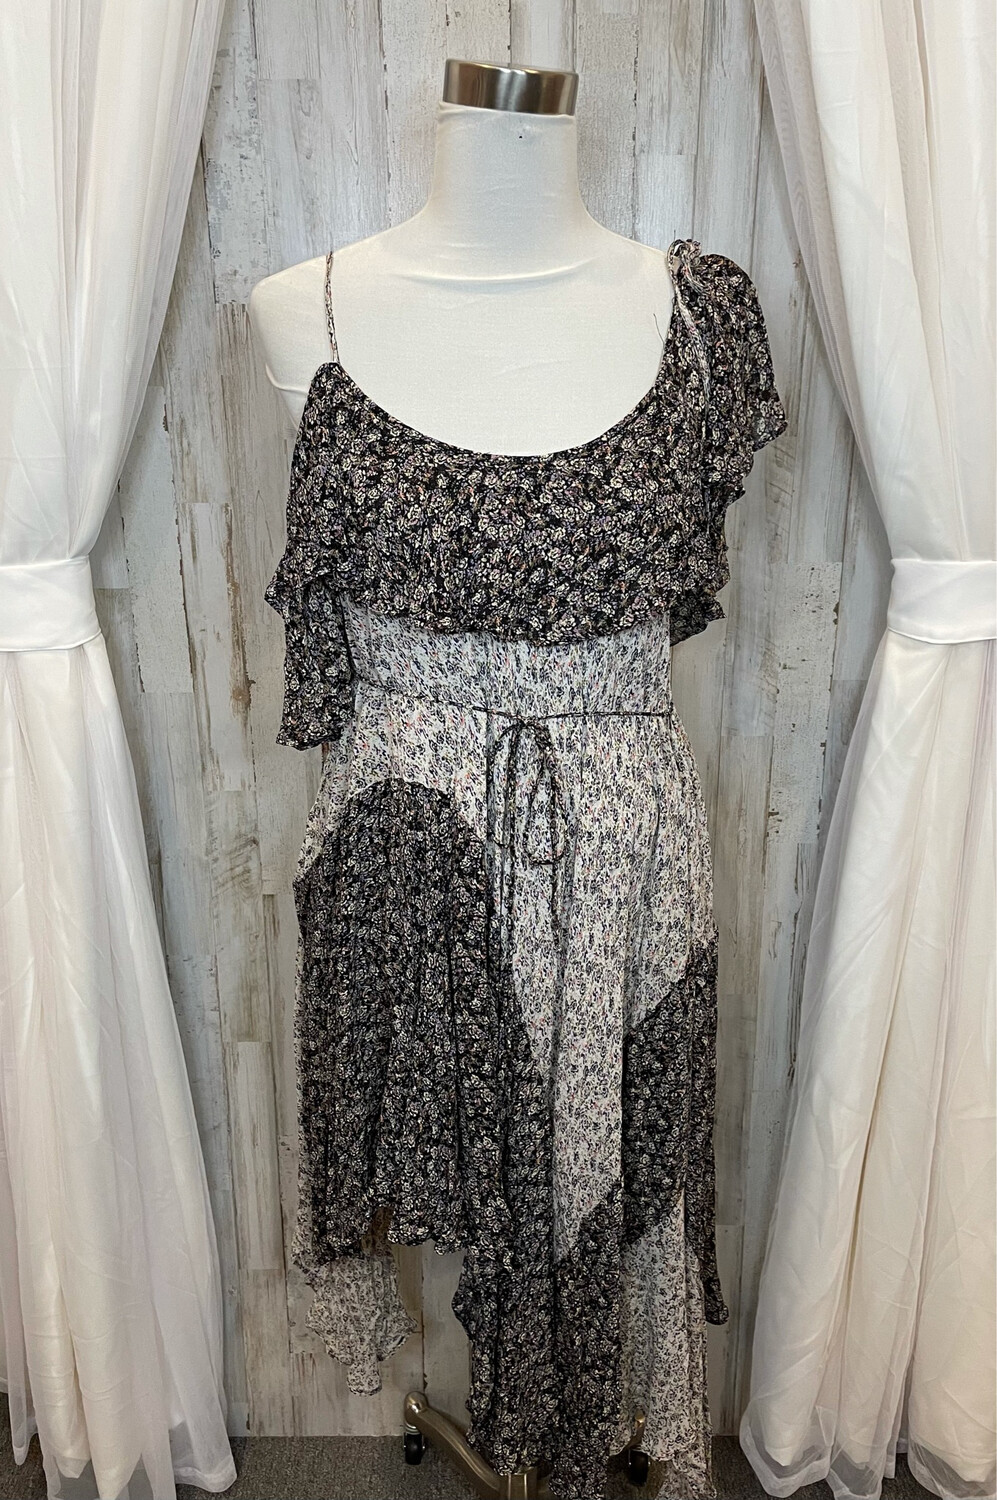 Free People Two Tone Floral Sheer Dress w/Ruffle Accent - XS